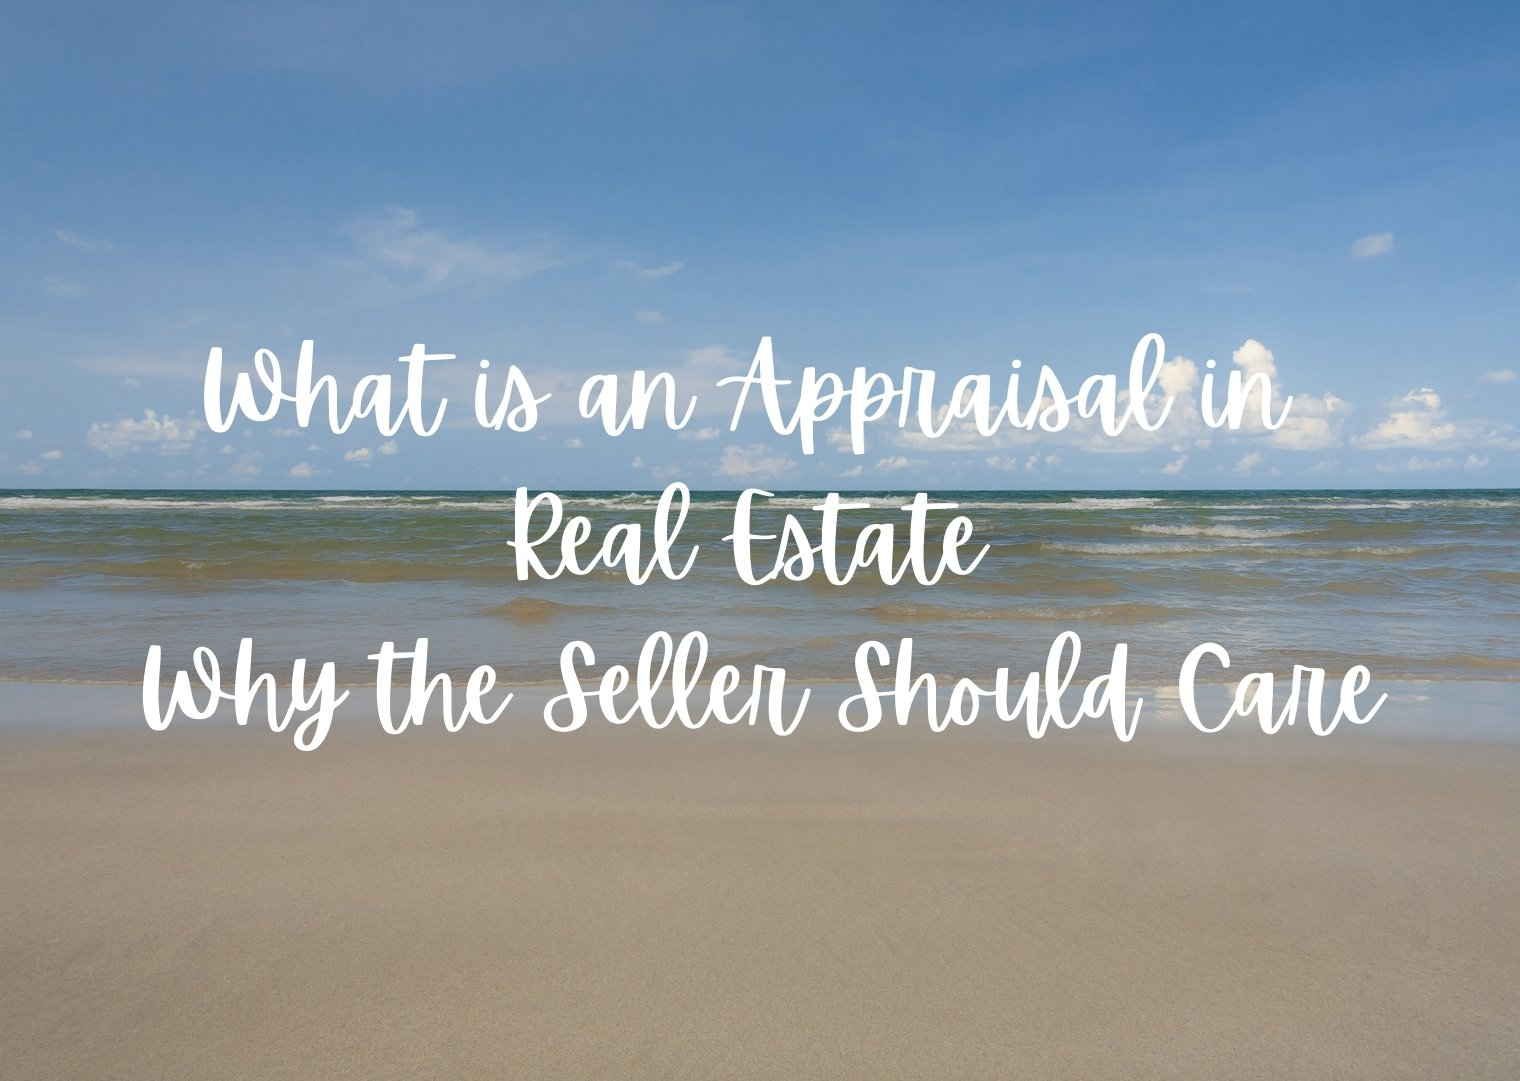 What is an Appraisal in Real Estate